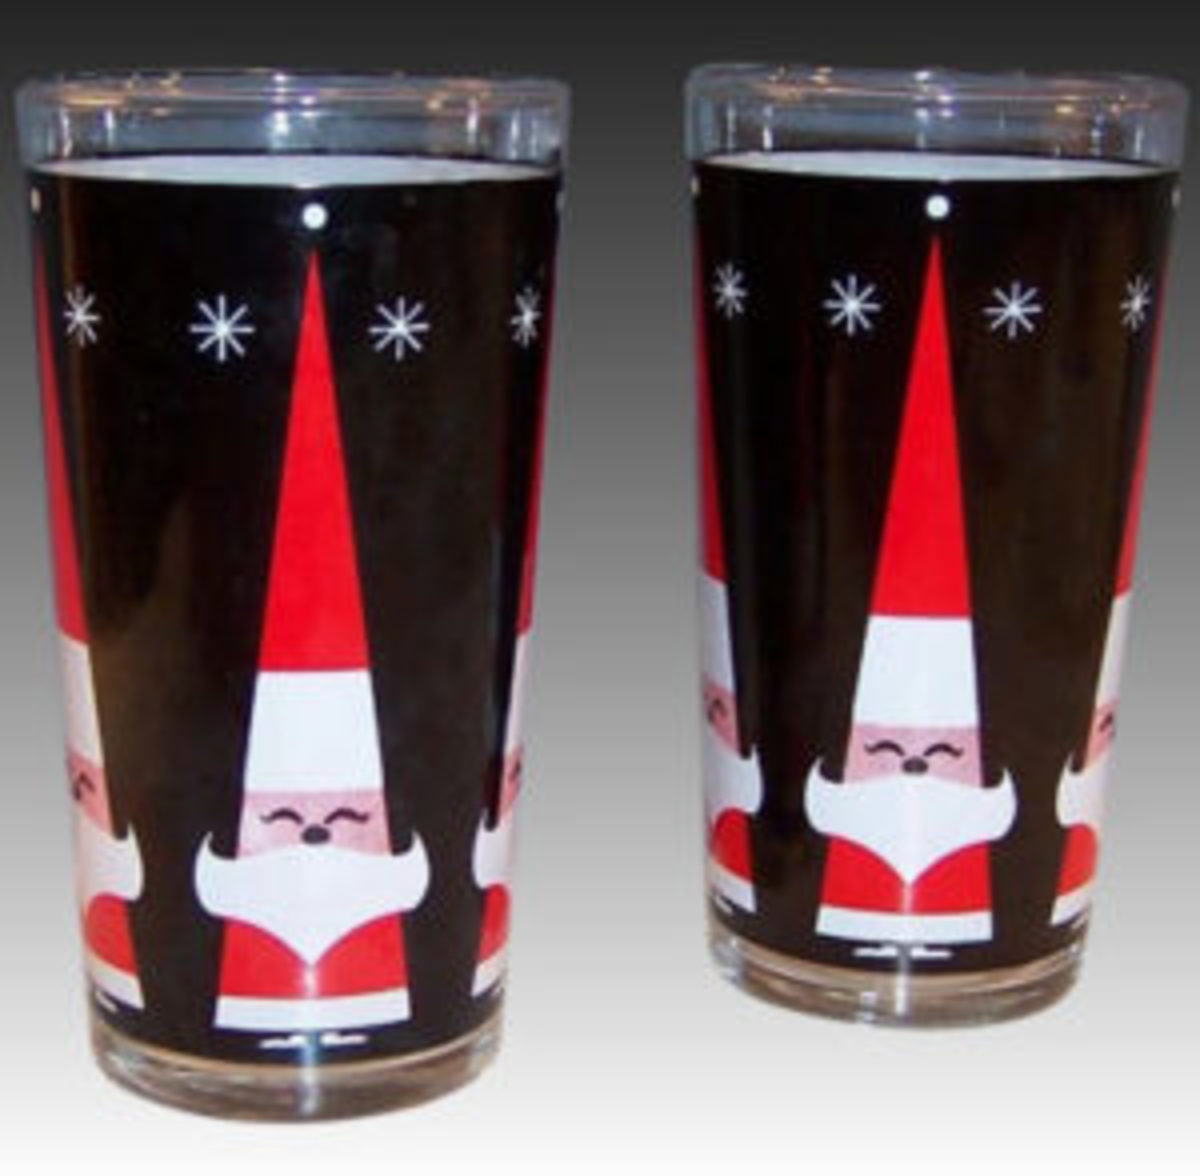 Holt Howard Christmas tumblers courtesy of Ruby Lane.